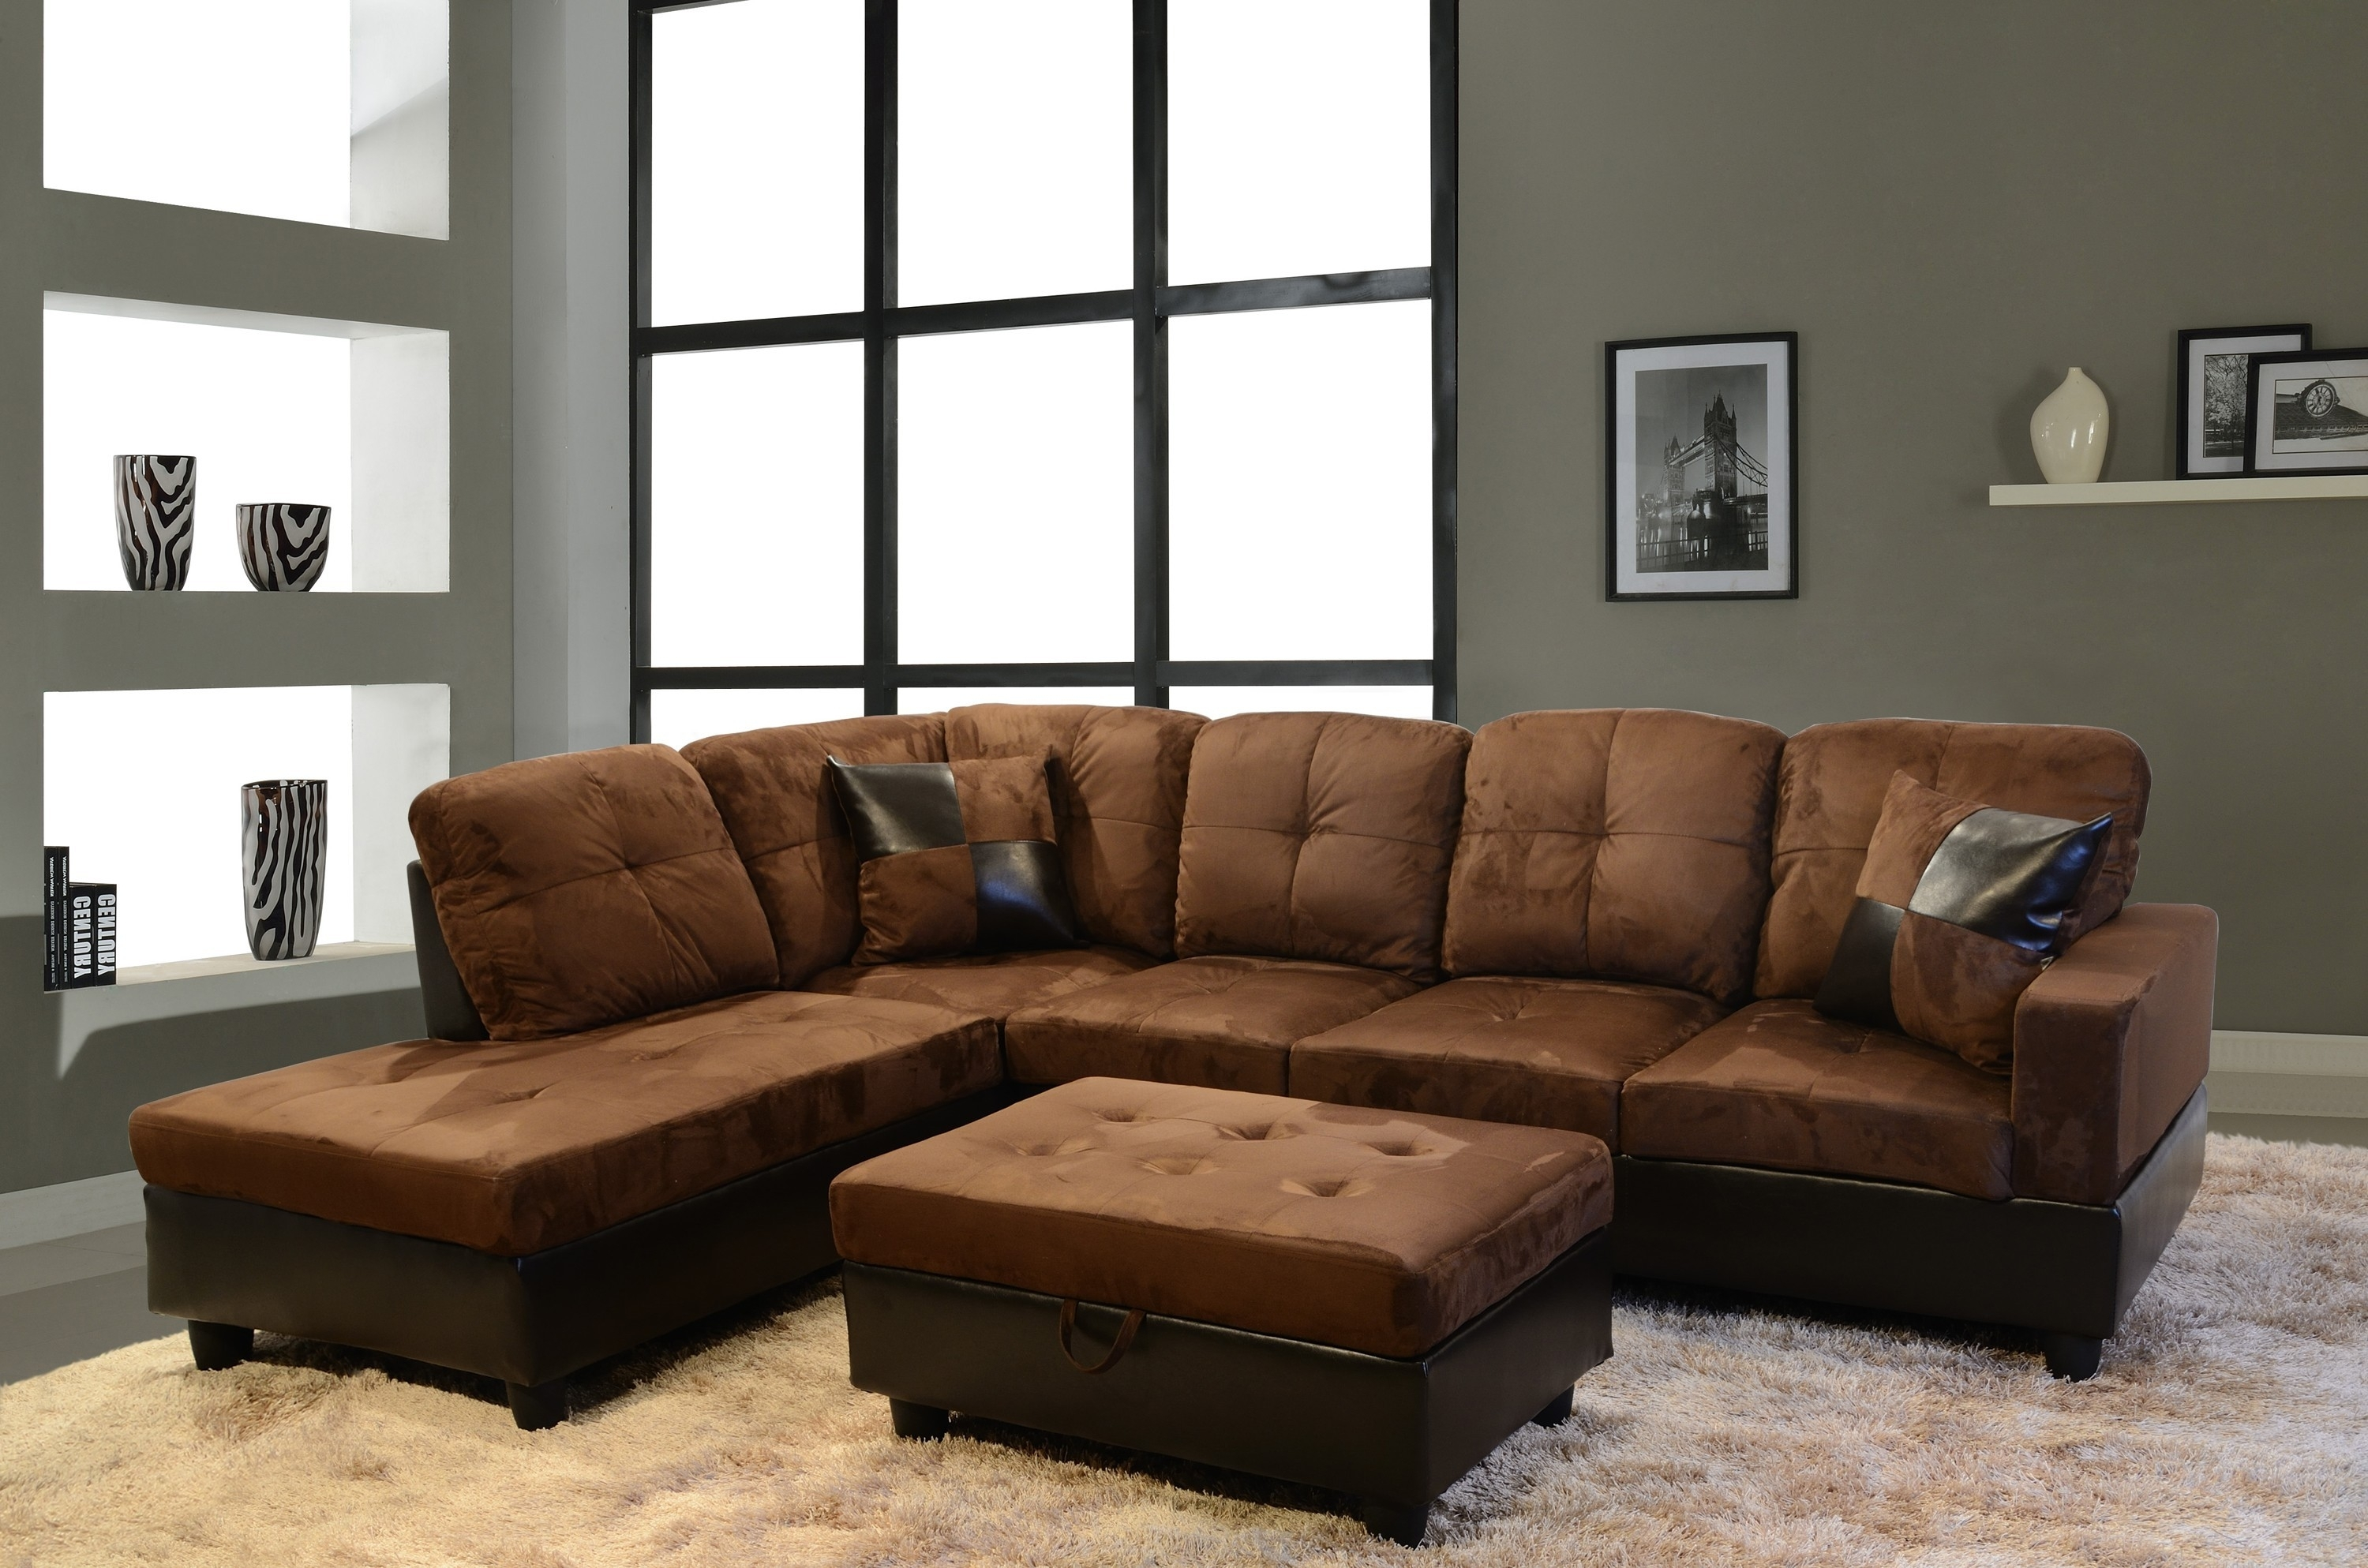 Sectional Sofa Designs Bangalore | Www.energywarden within Sectional Sofas at Bangalore (Image 12 of 15)